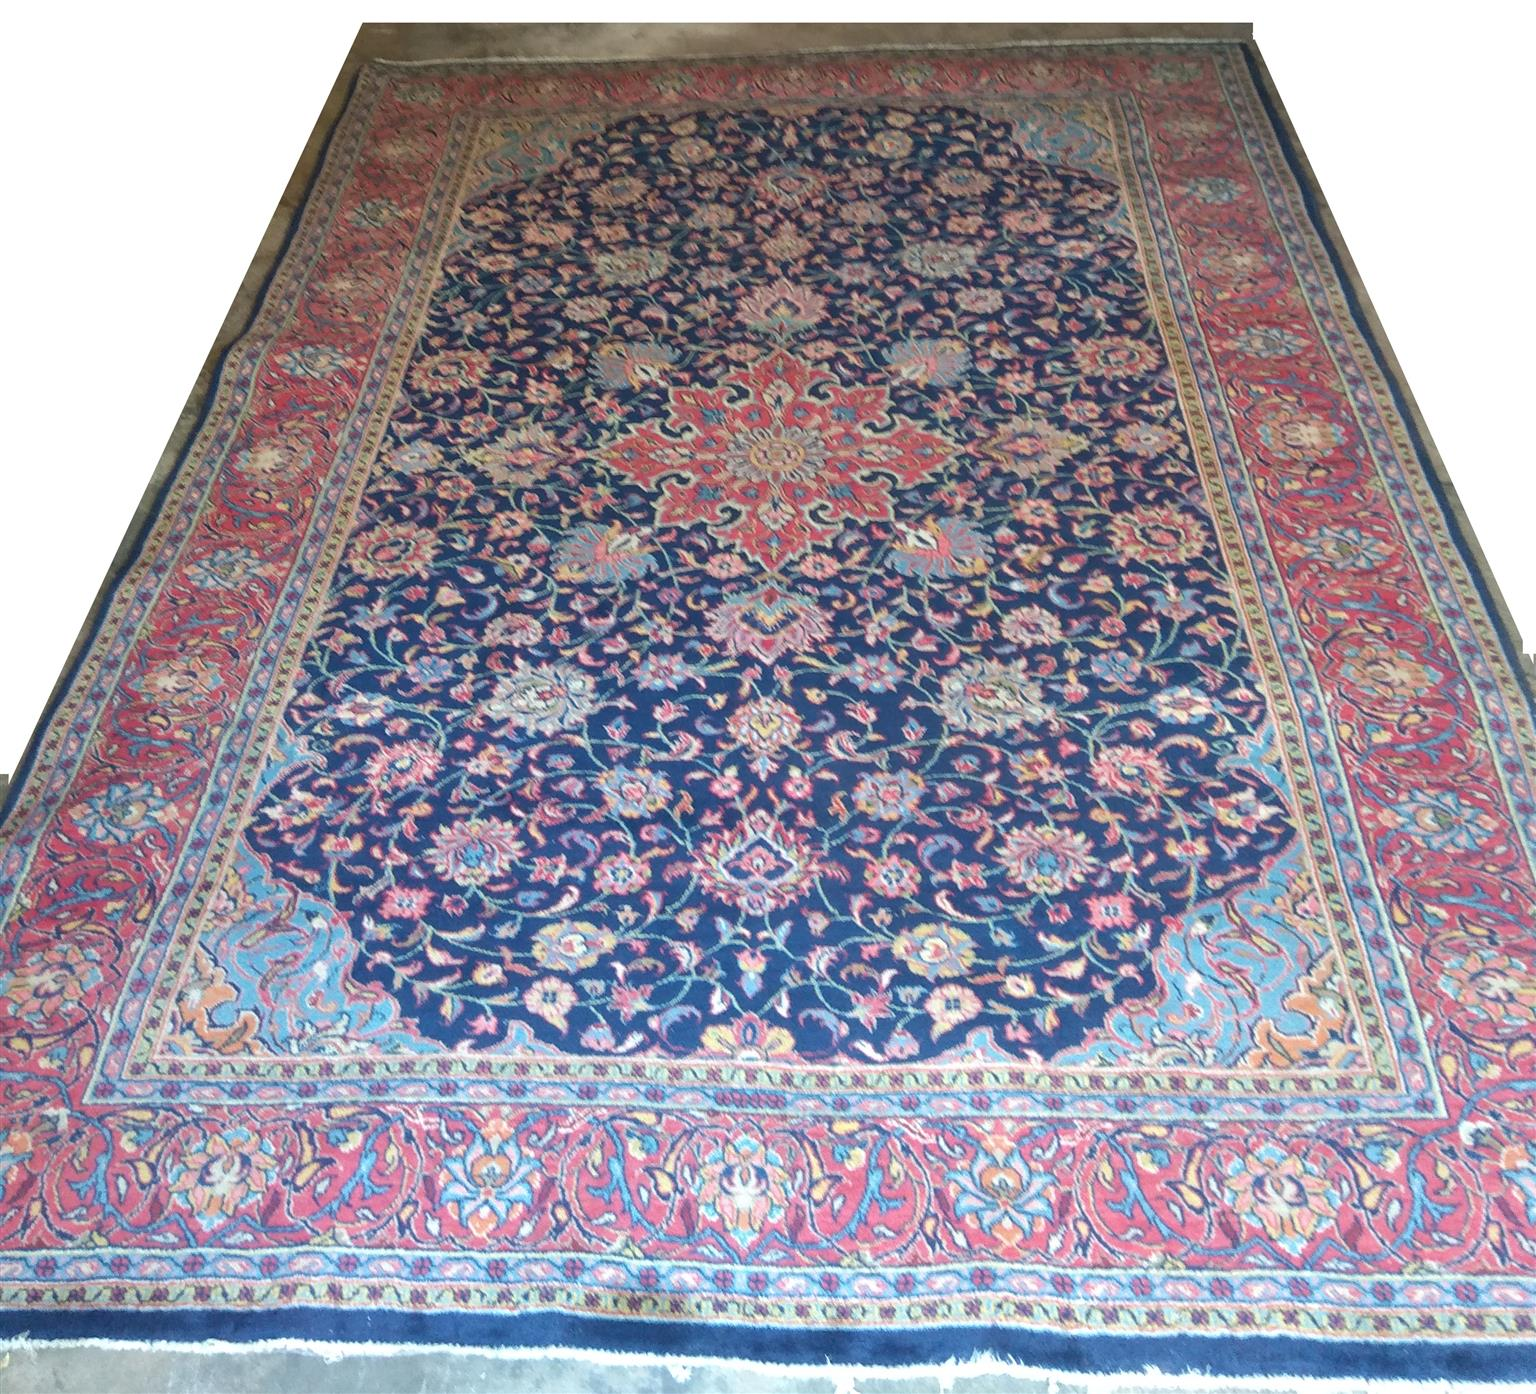 Sarouk Persian carpet (3200mm x 2240mm)